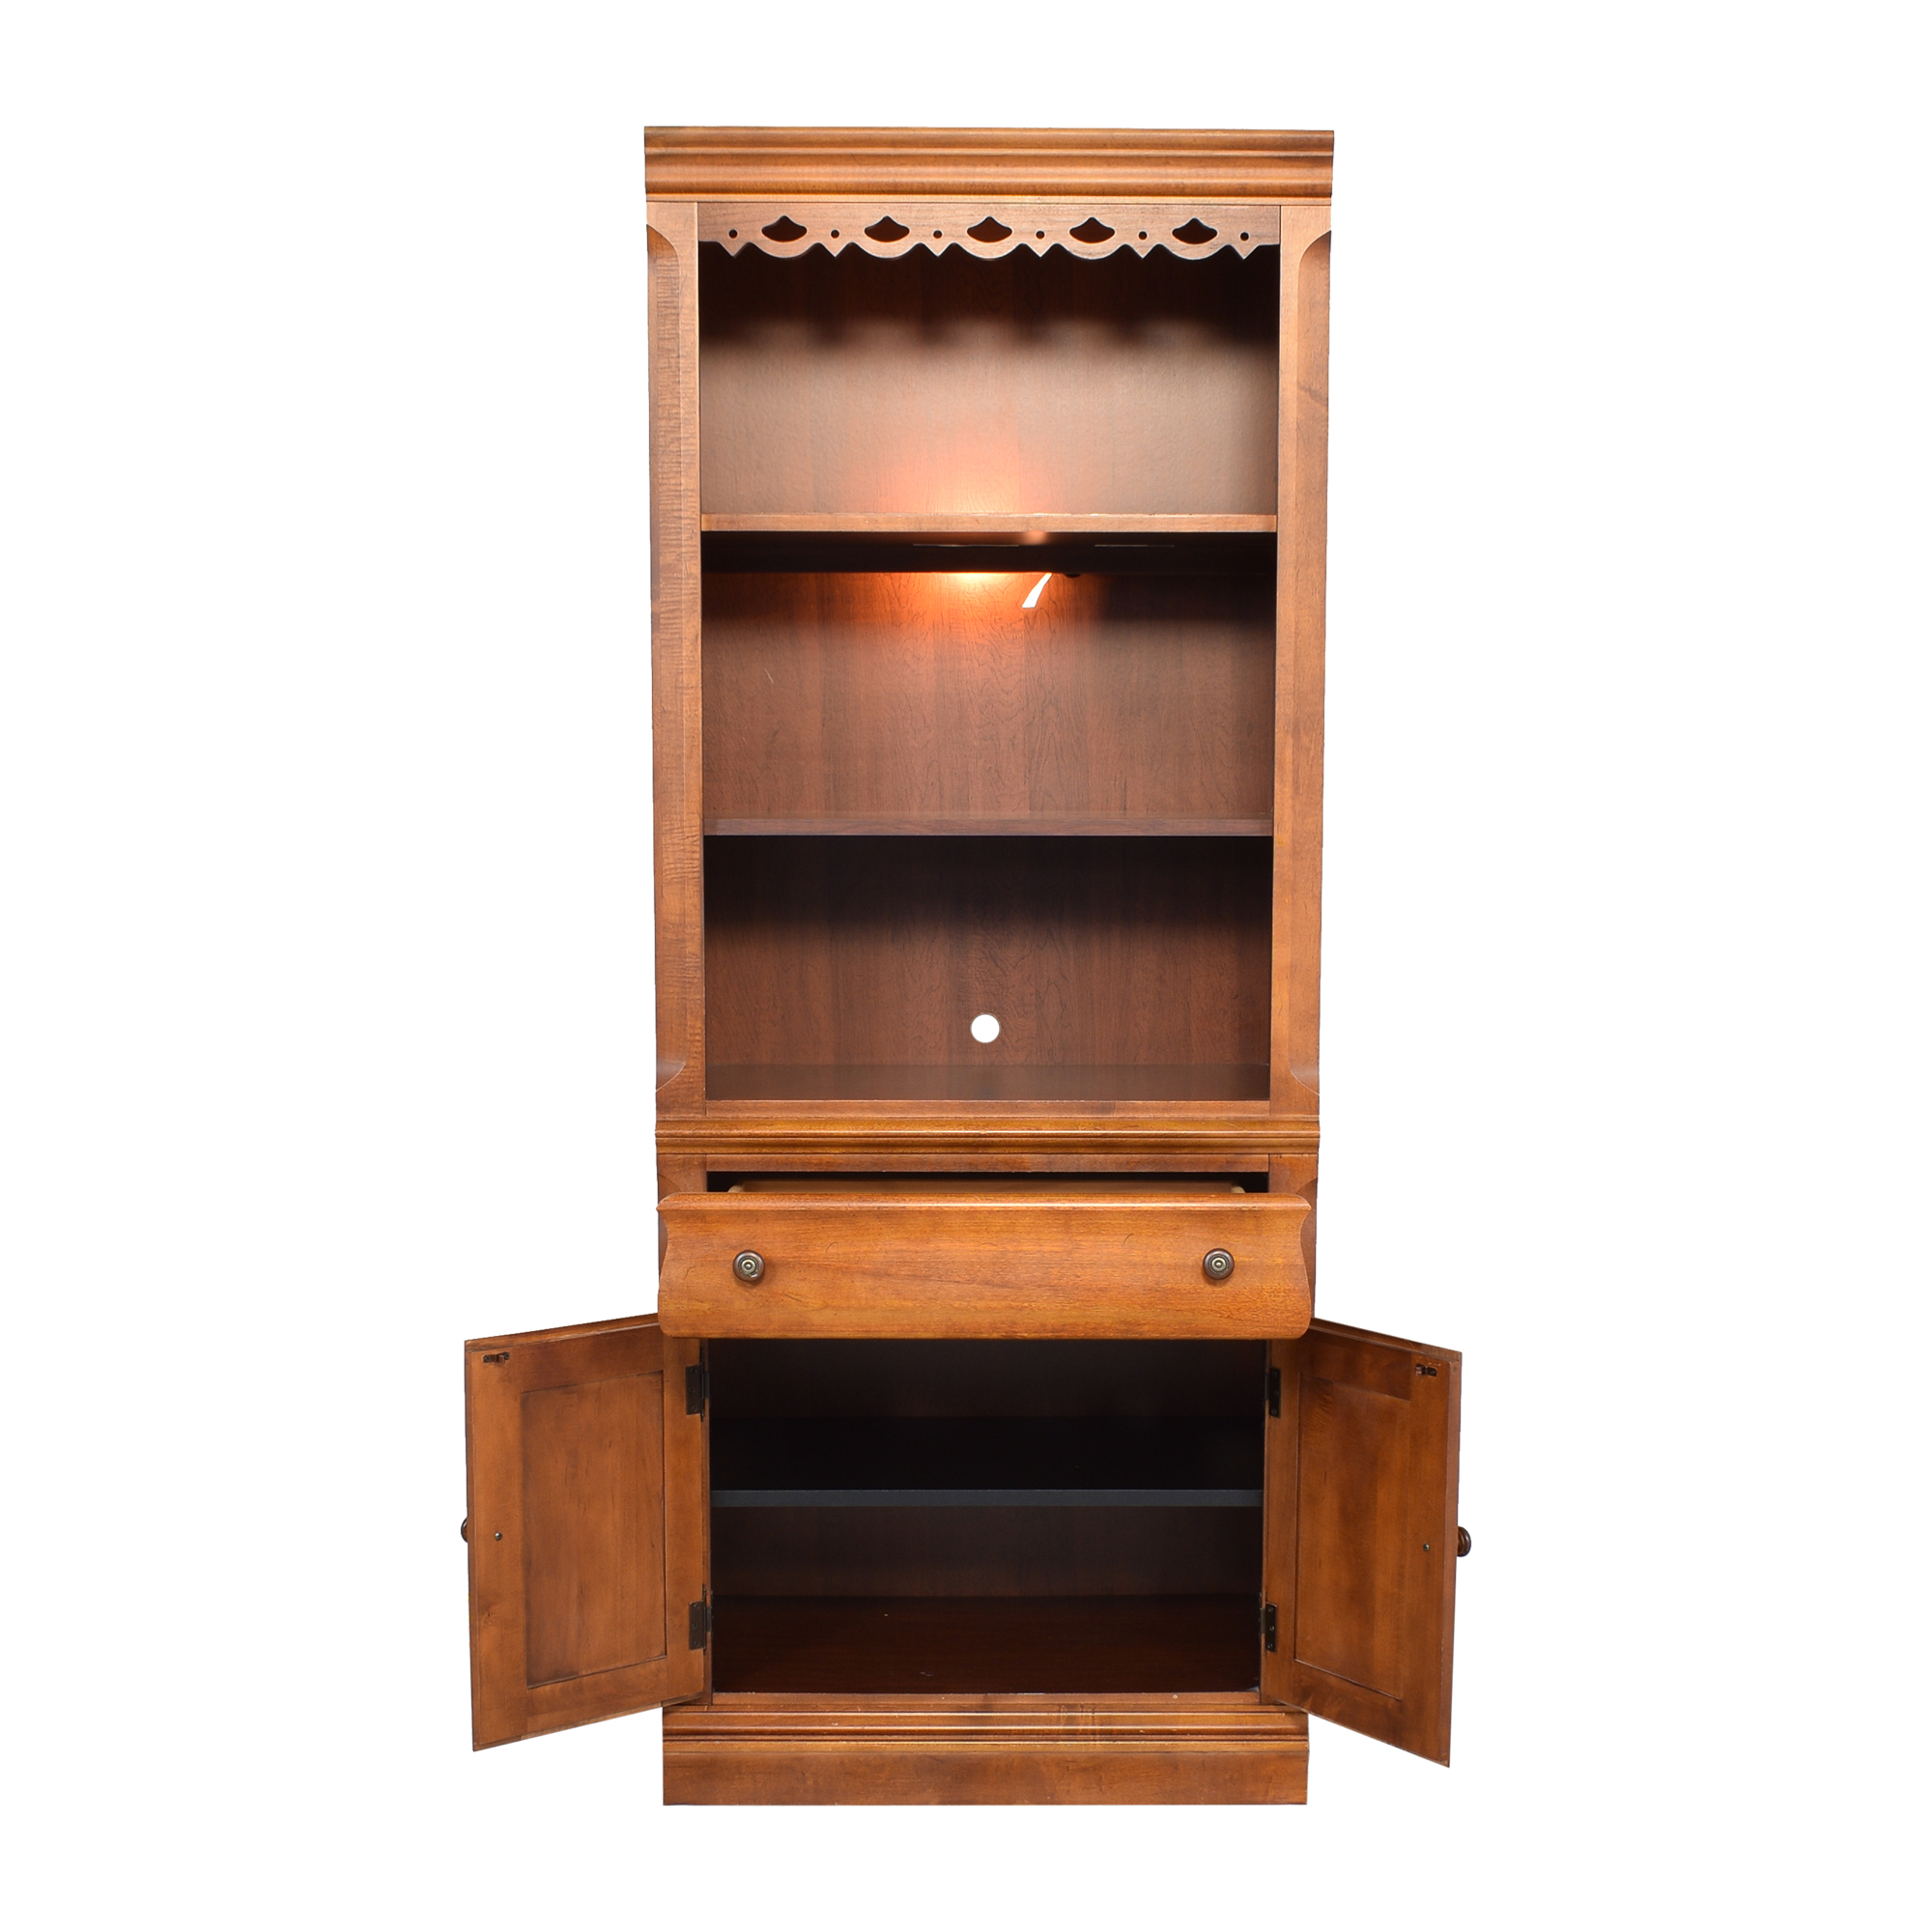 Broyhill Furniture Broyhill Furniture Lighted Bookcase second hand